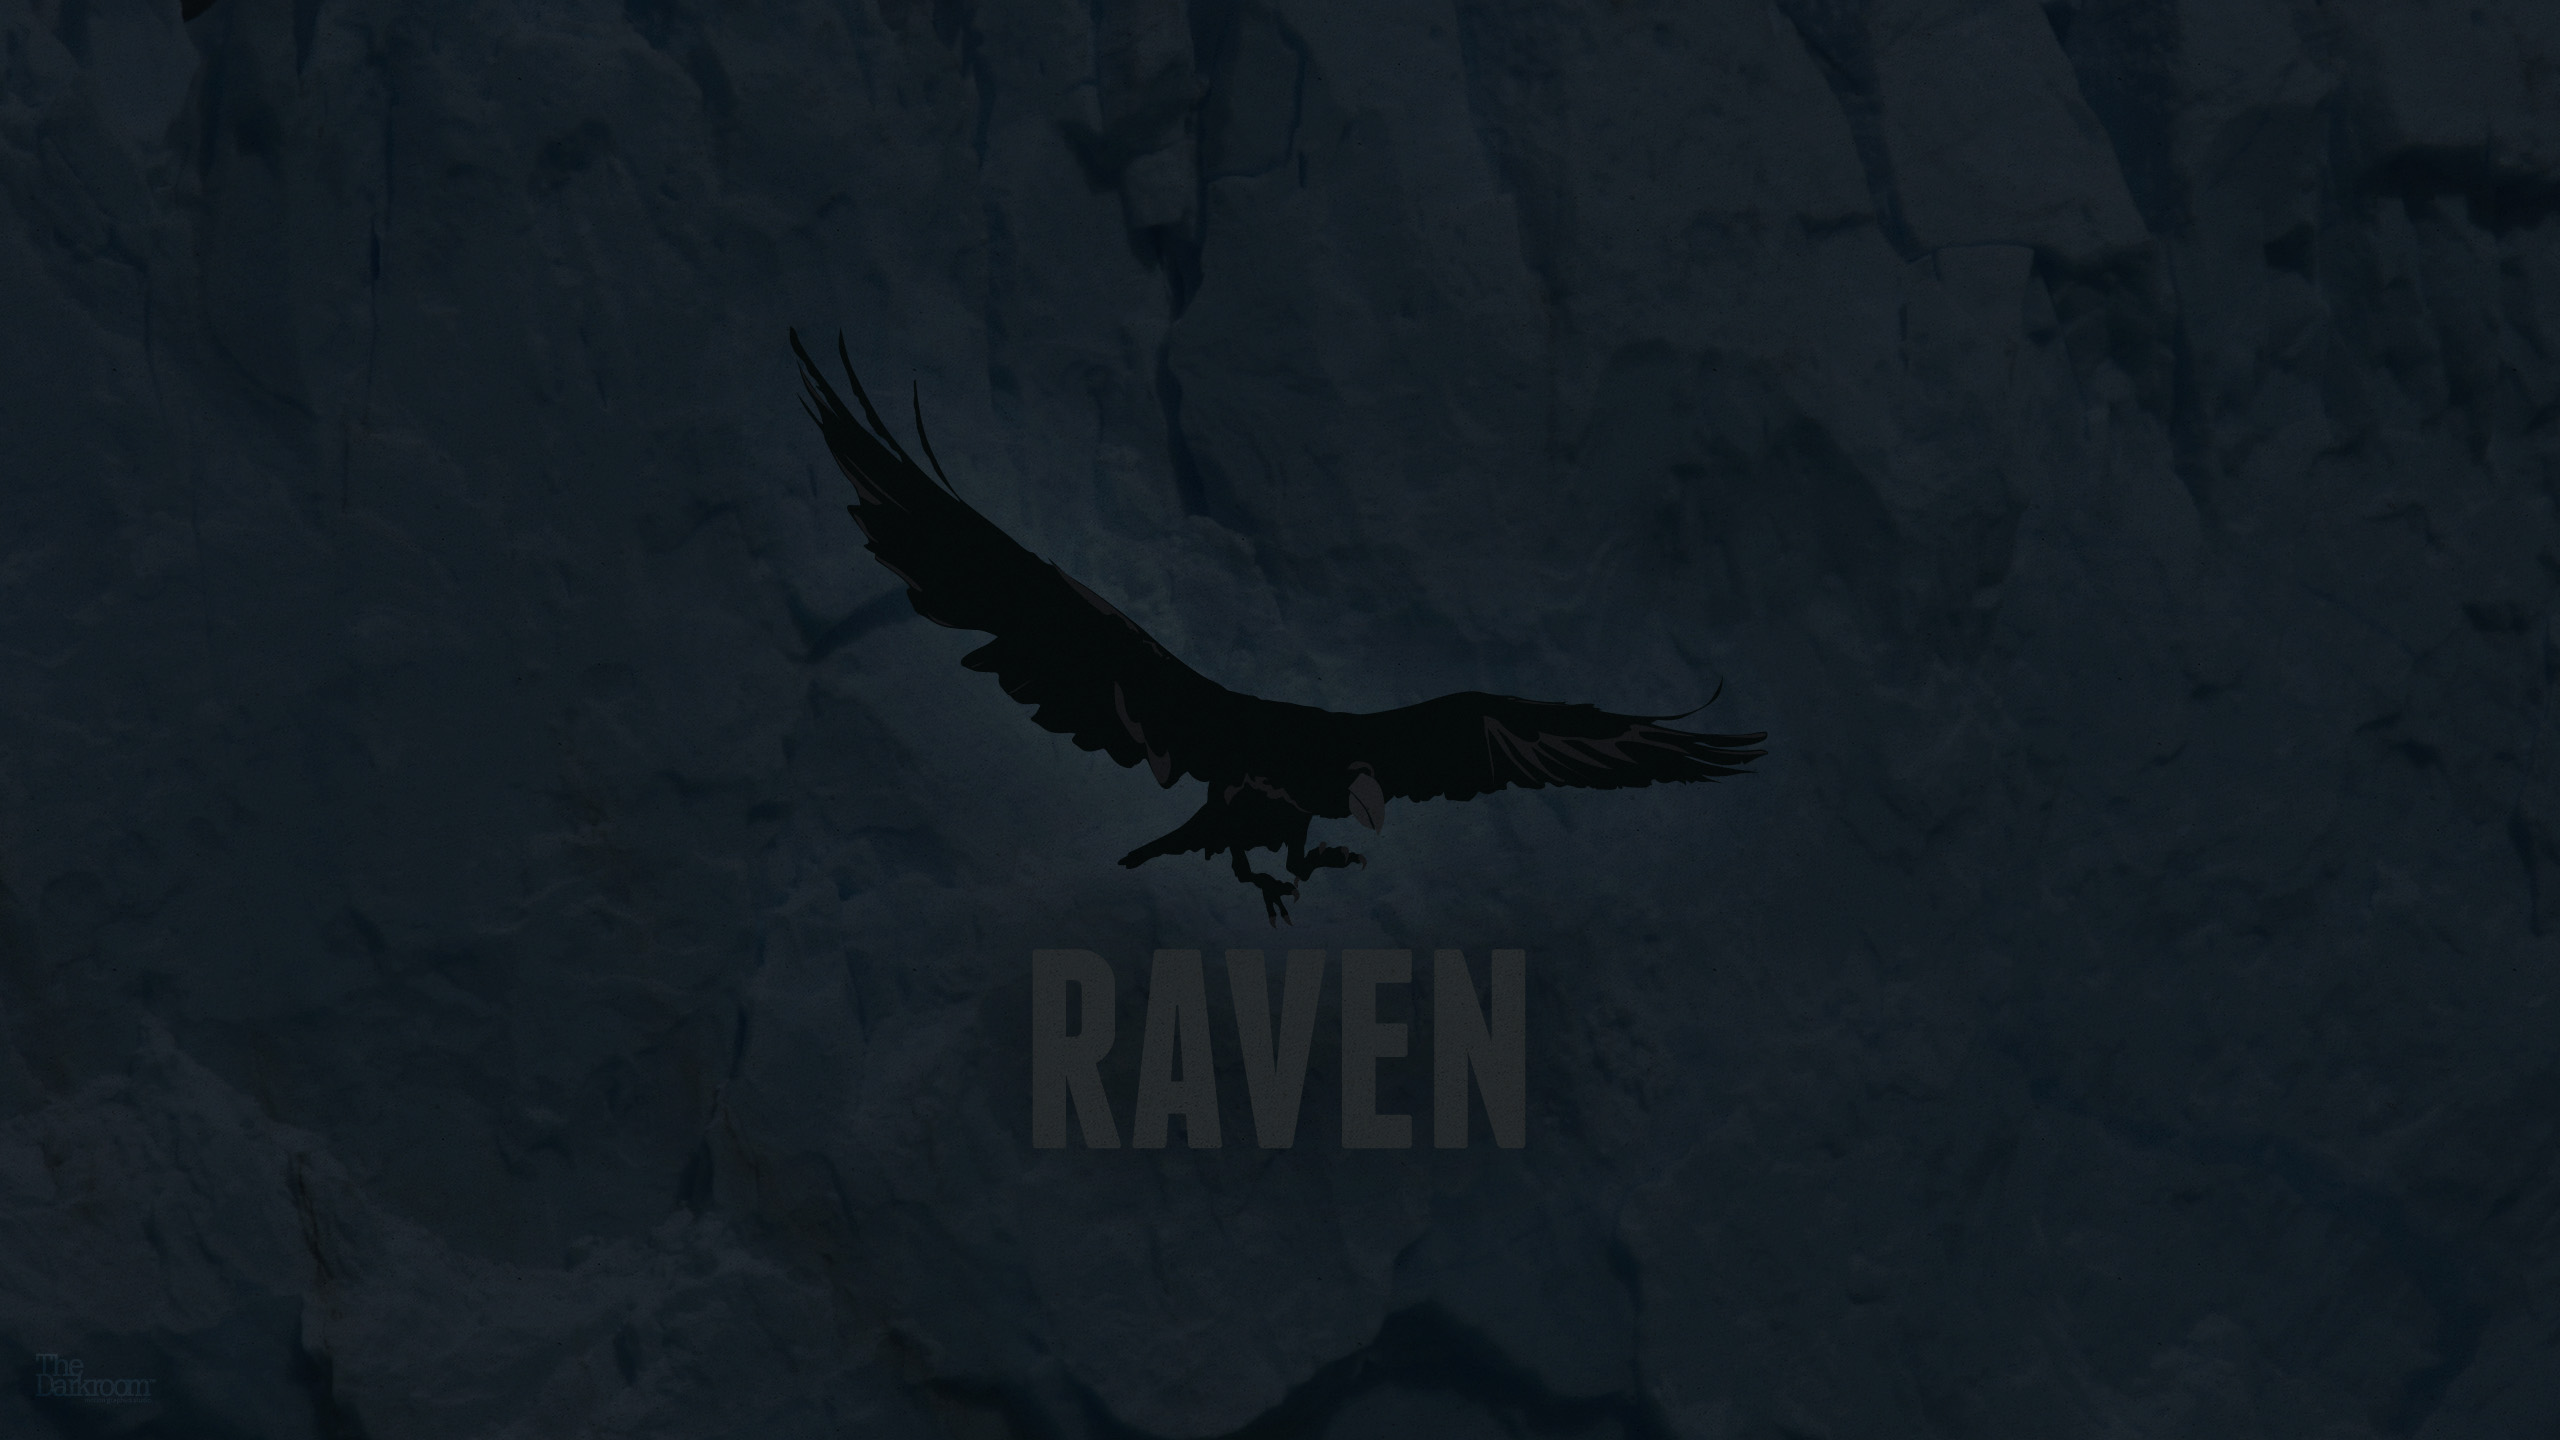 Custom HD 48 Raven Wallpapers Collection 2560x1440